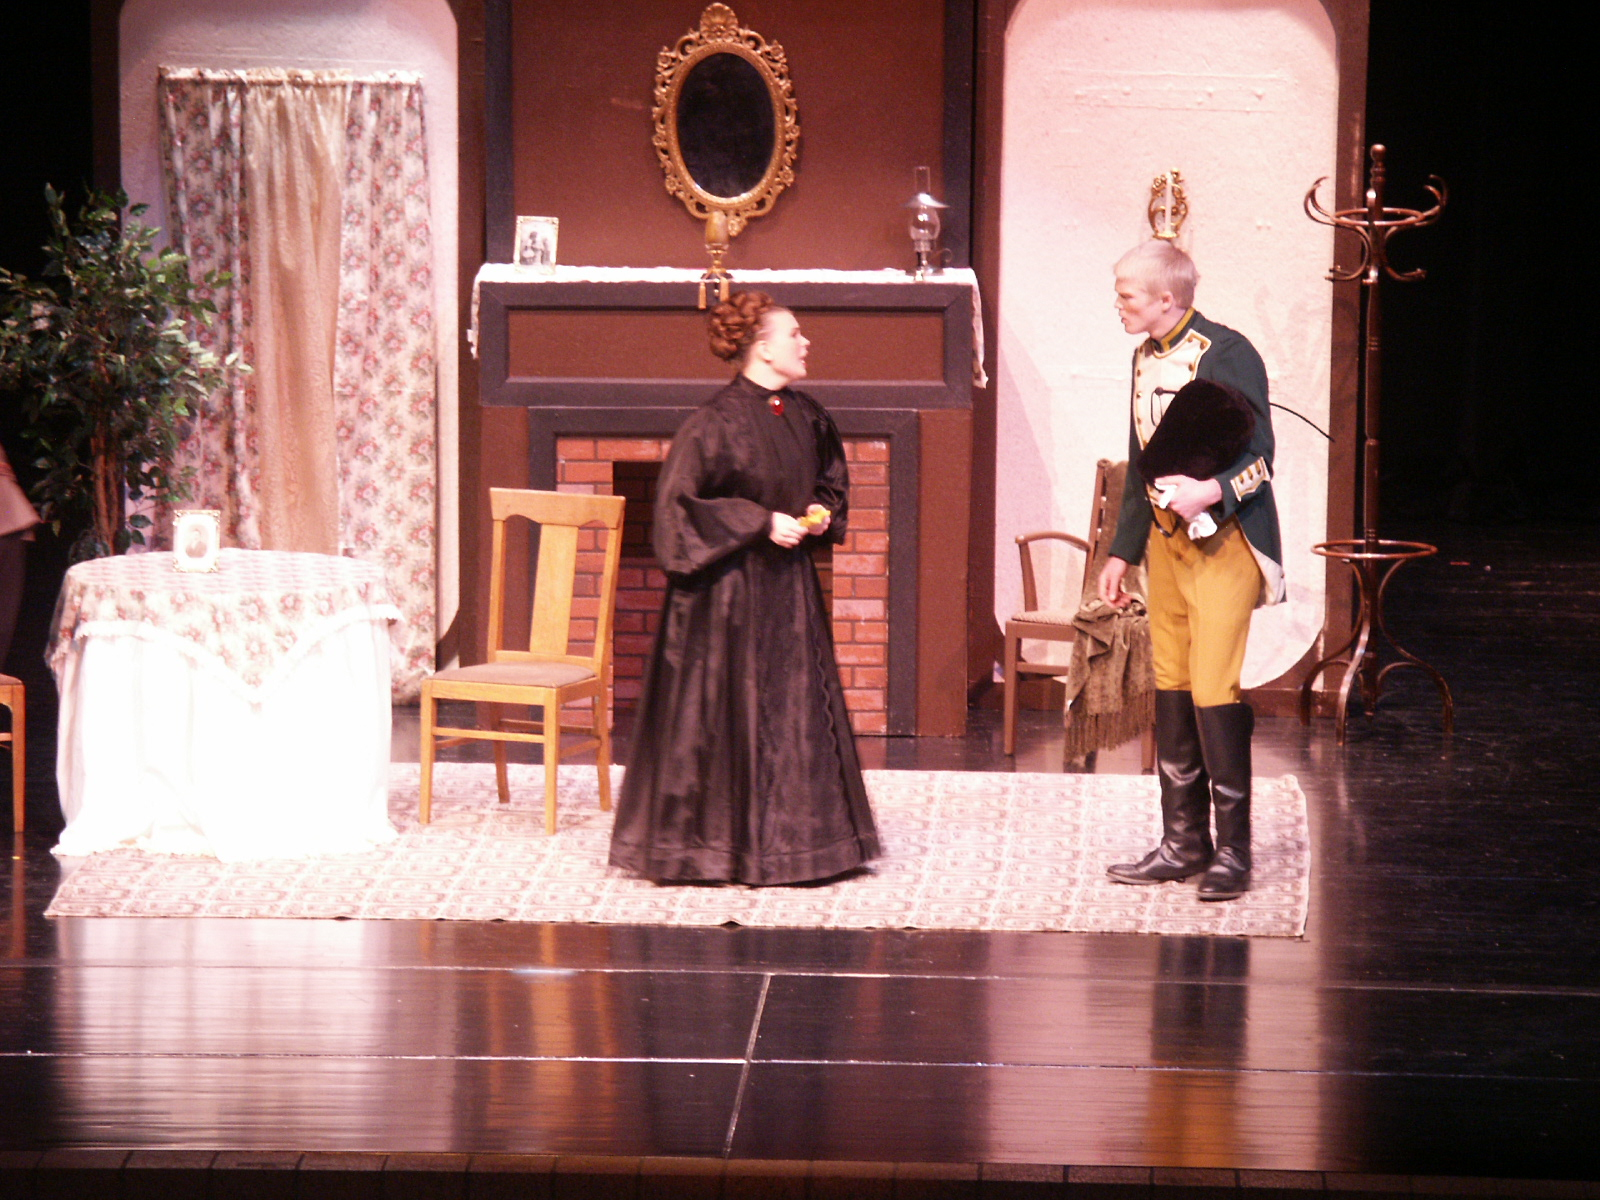 romantic farce in the boor a one act comedic play by anton chekhov Anton chekhov is often referred to as the  mostly comedic one-act farces including  be bride clash comically in chekhov's famous one-act romantic farce.